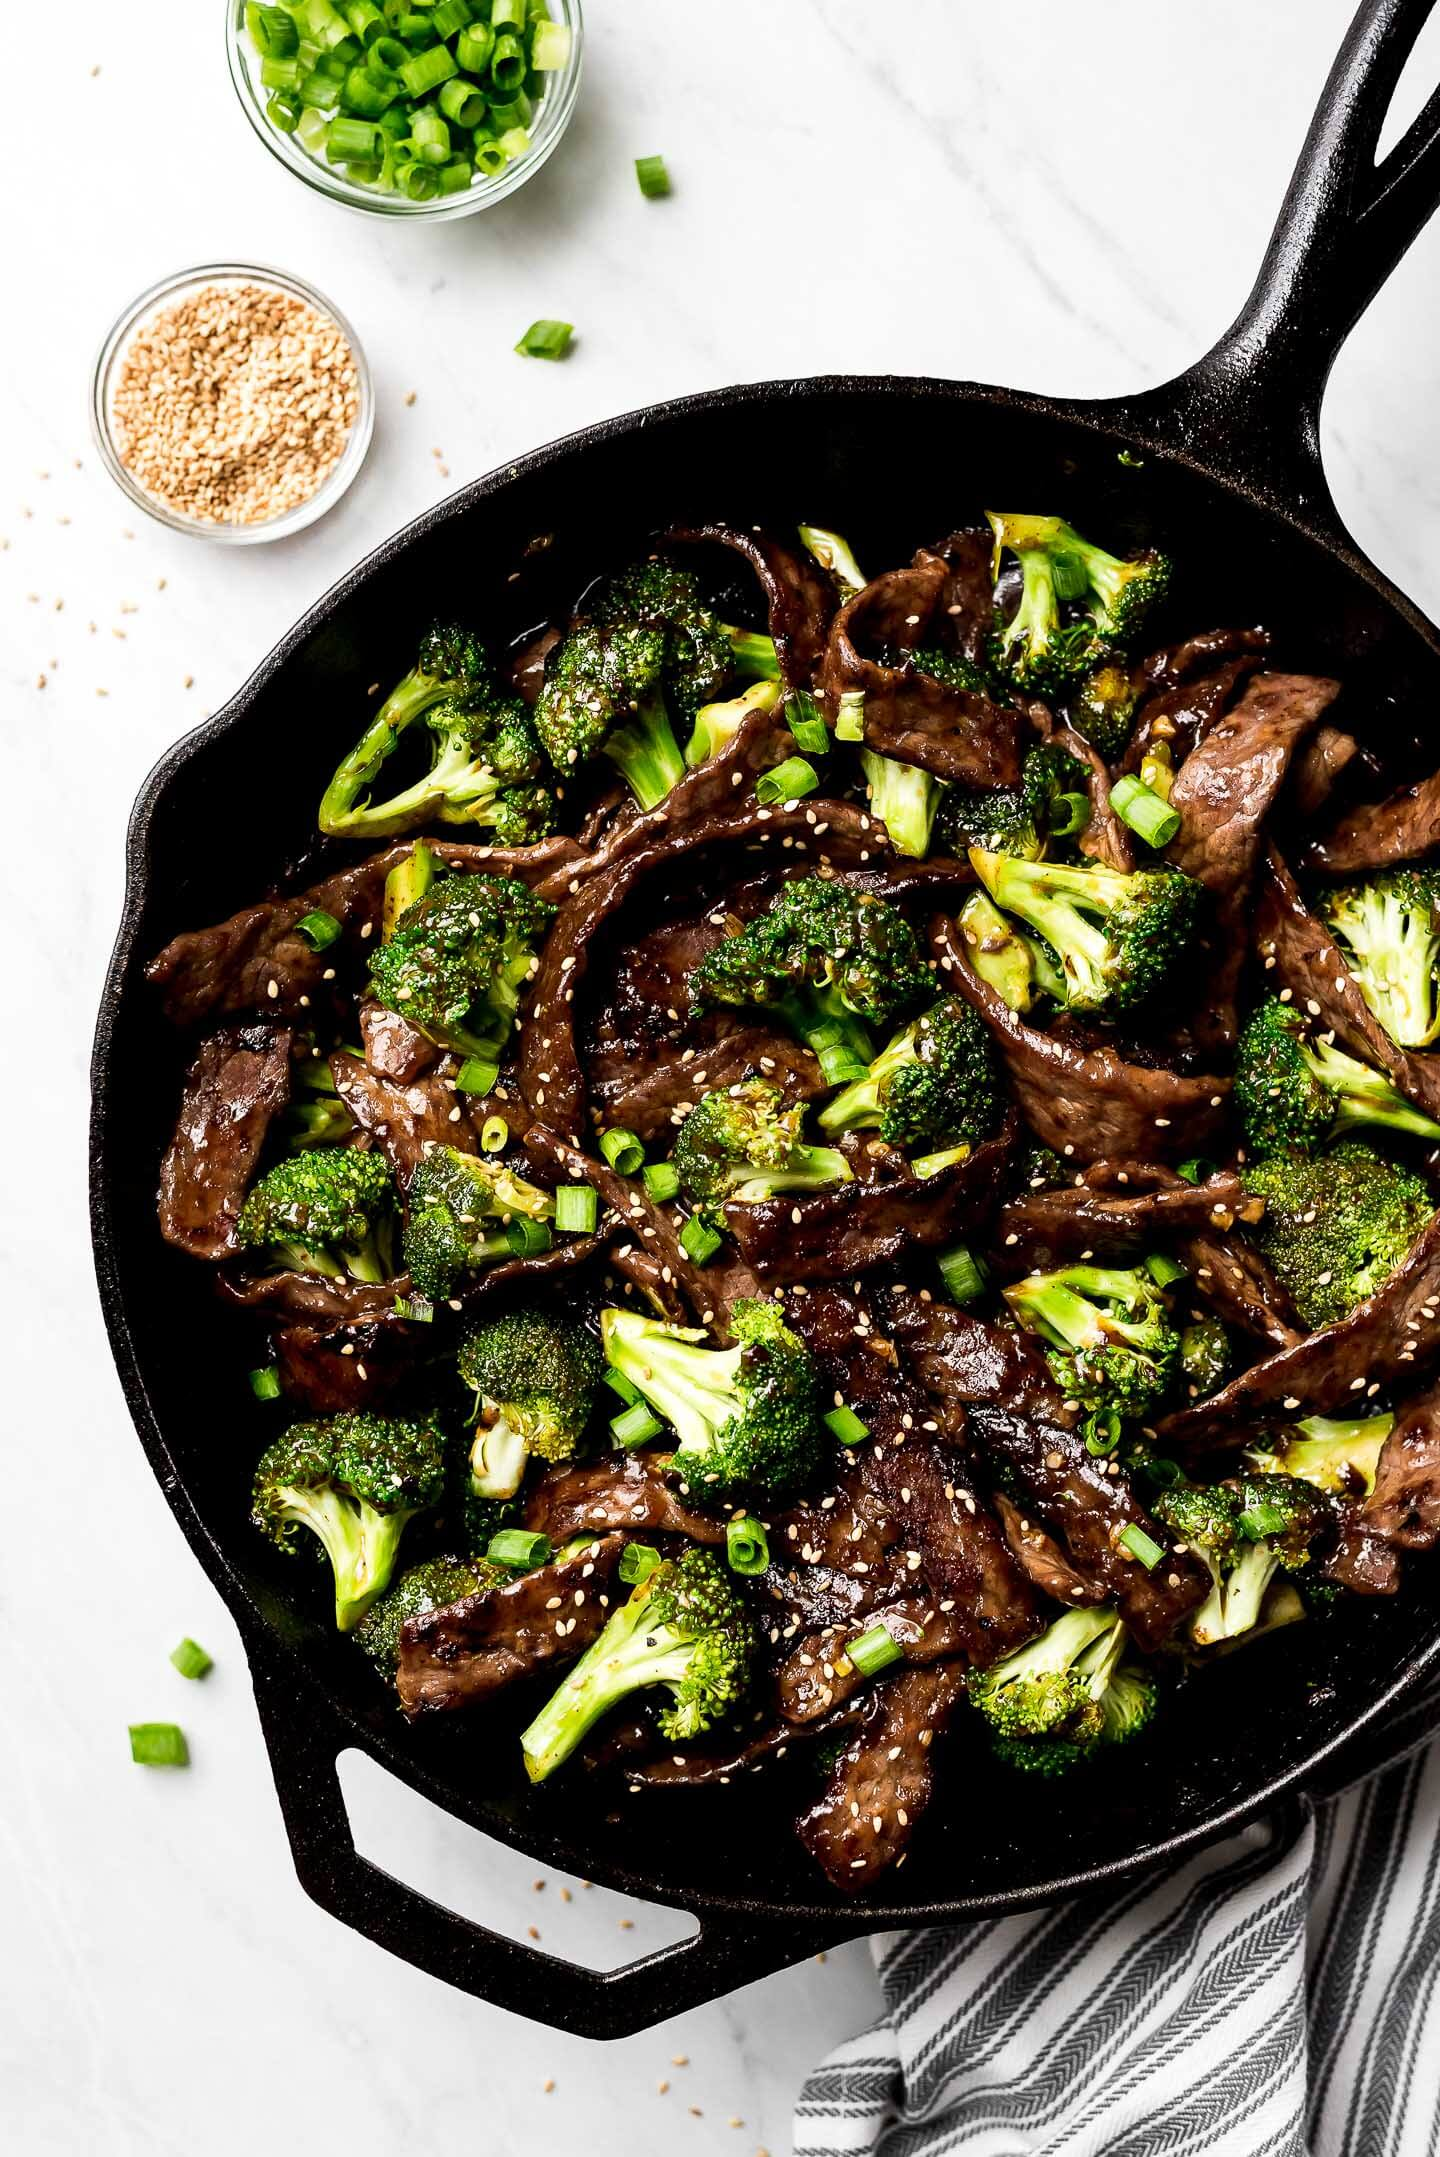 A skillet of Beef and Broccoli and small bowls of green onions and sesame seeds to the side.